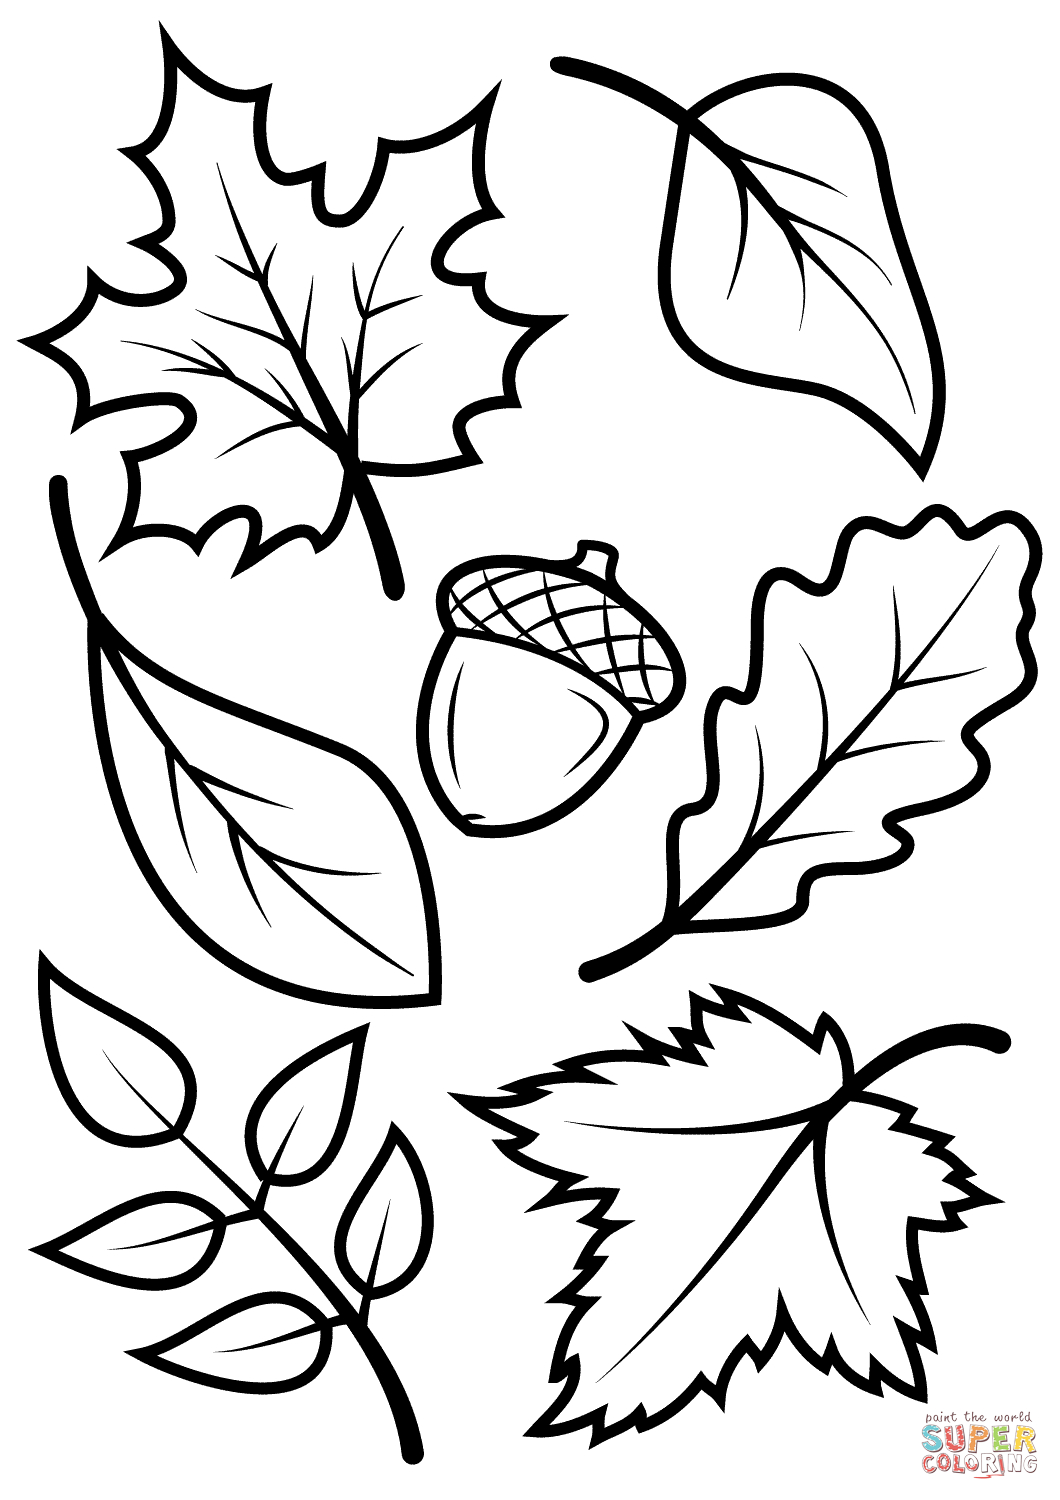 Fall Leaves And Acorn Coloring Page | Free Printable Coloring Pages - Free Printable Coloring Pages Fall Season